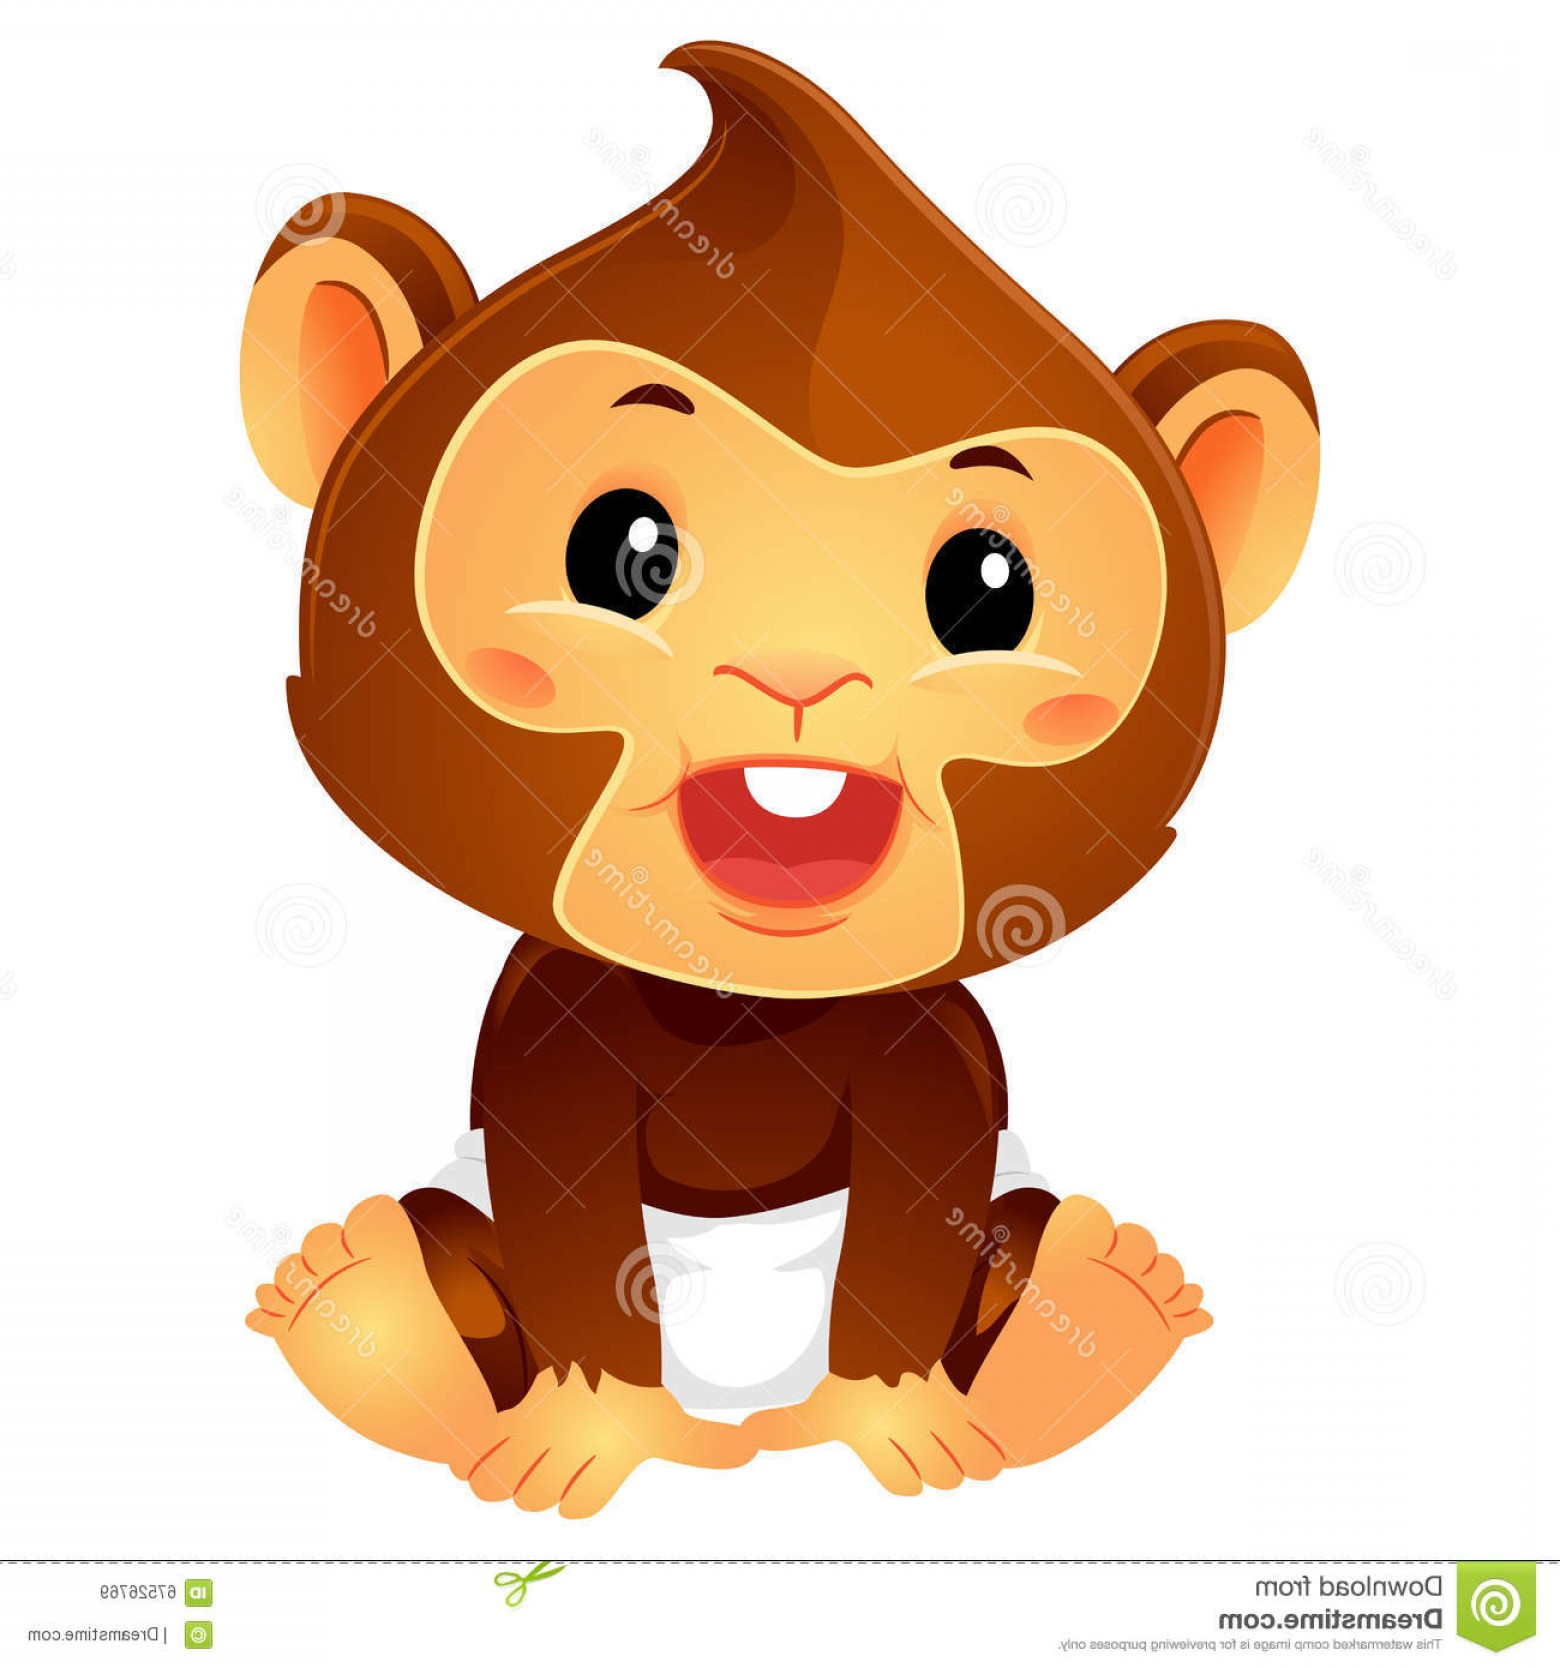 Sitting Monkey Vector Baby Shower: Stock Illustration Illustration Baby Monkey Wearing Diaper Vector Cartoon Sitting Position Image